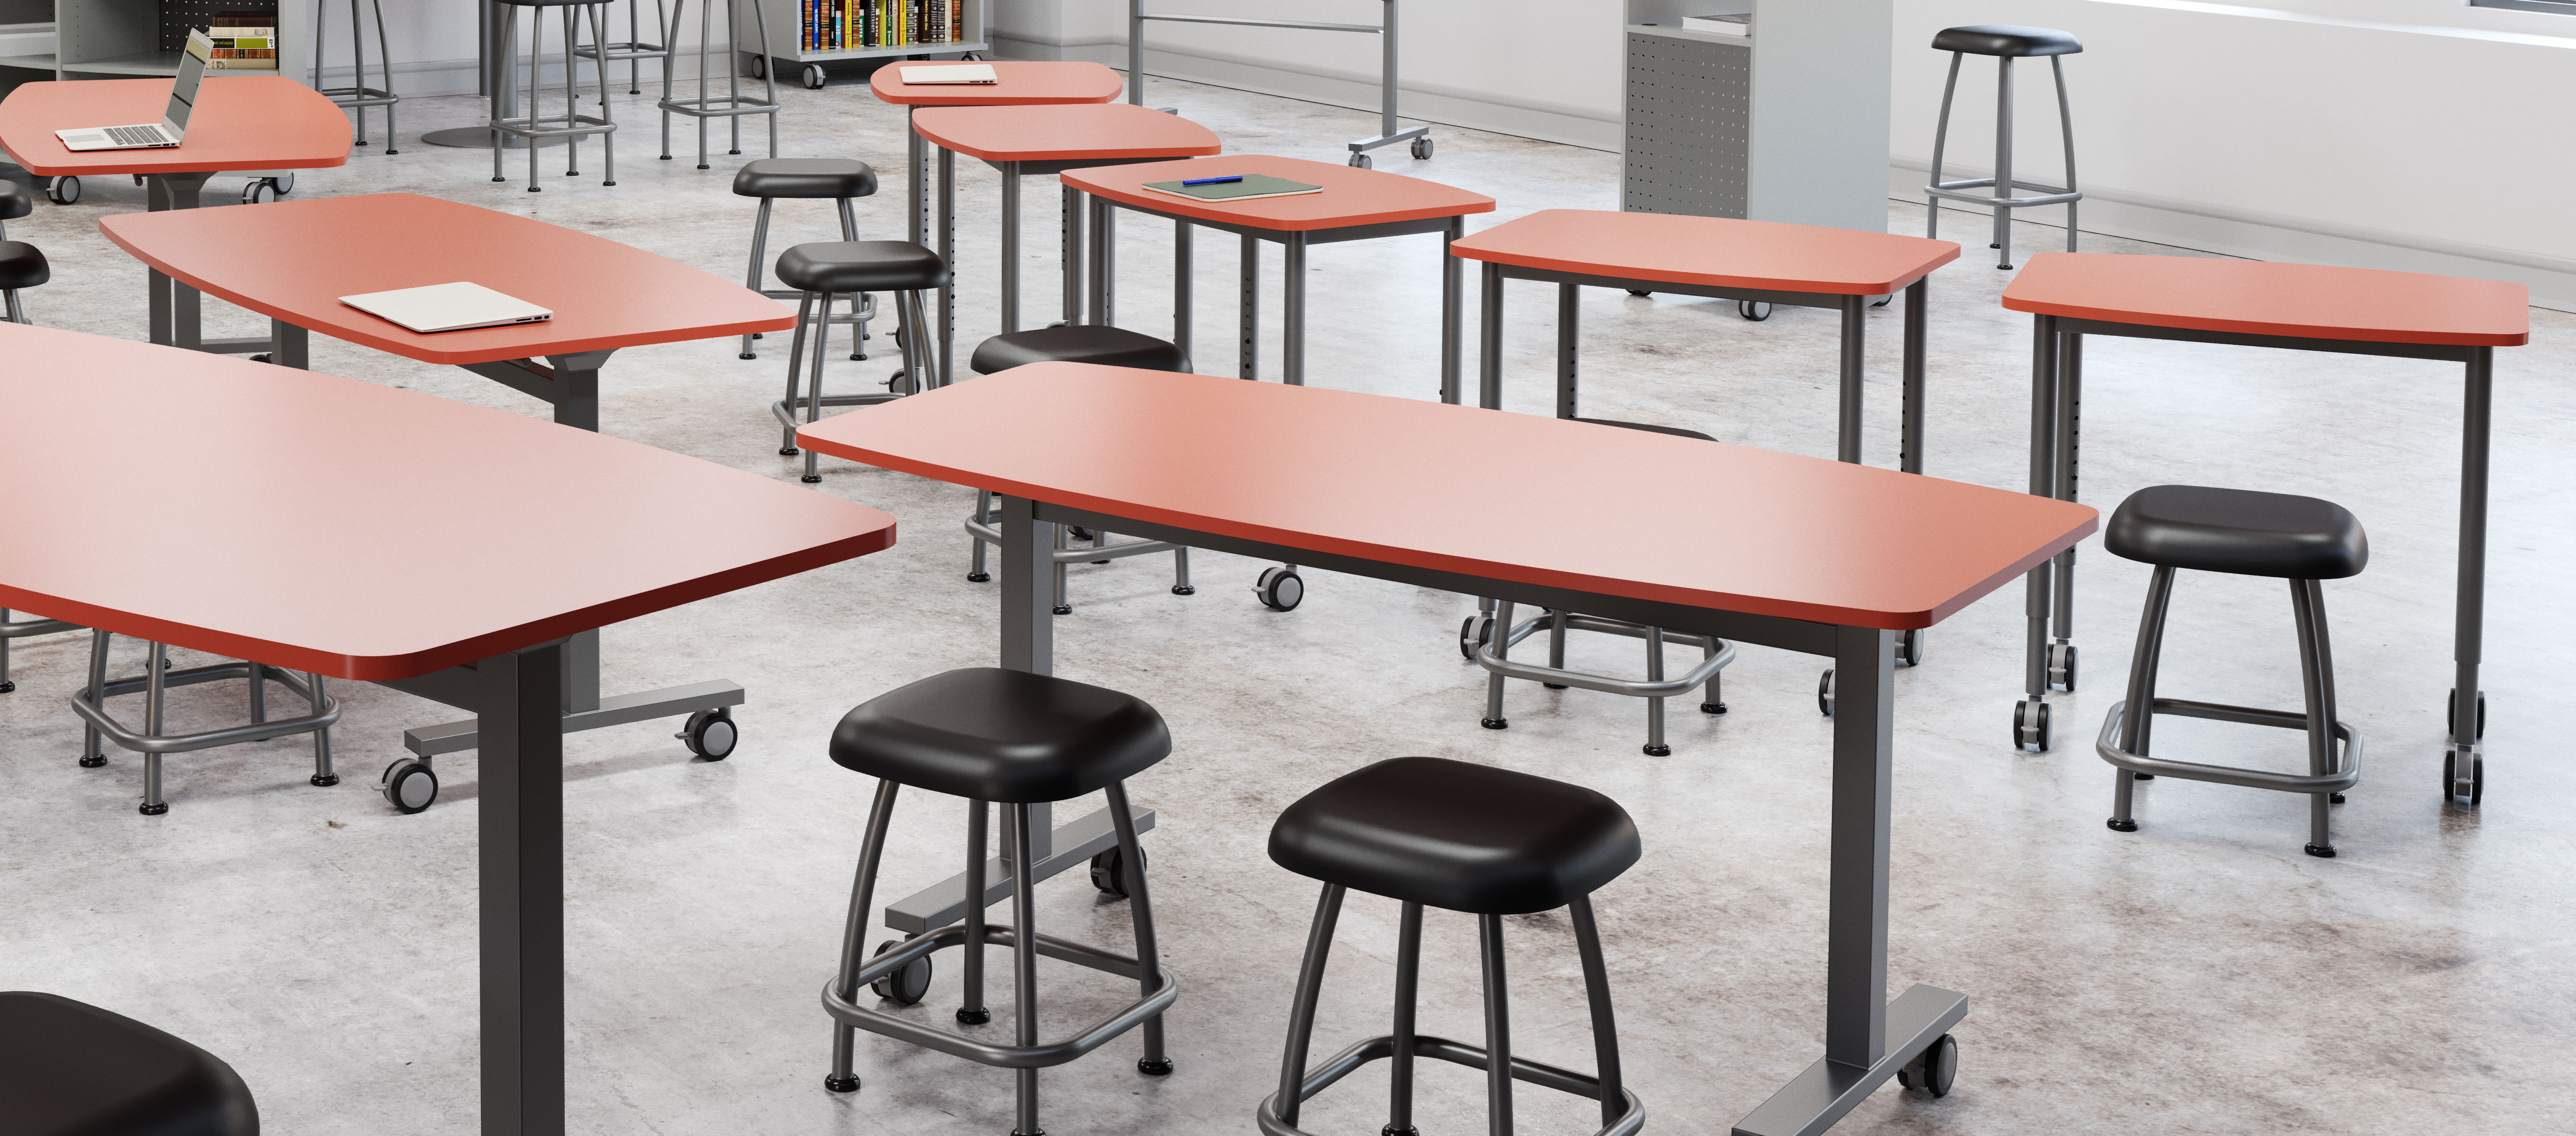 Rendering of Desks and Tables